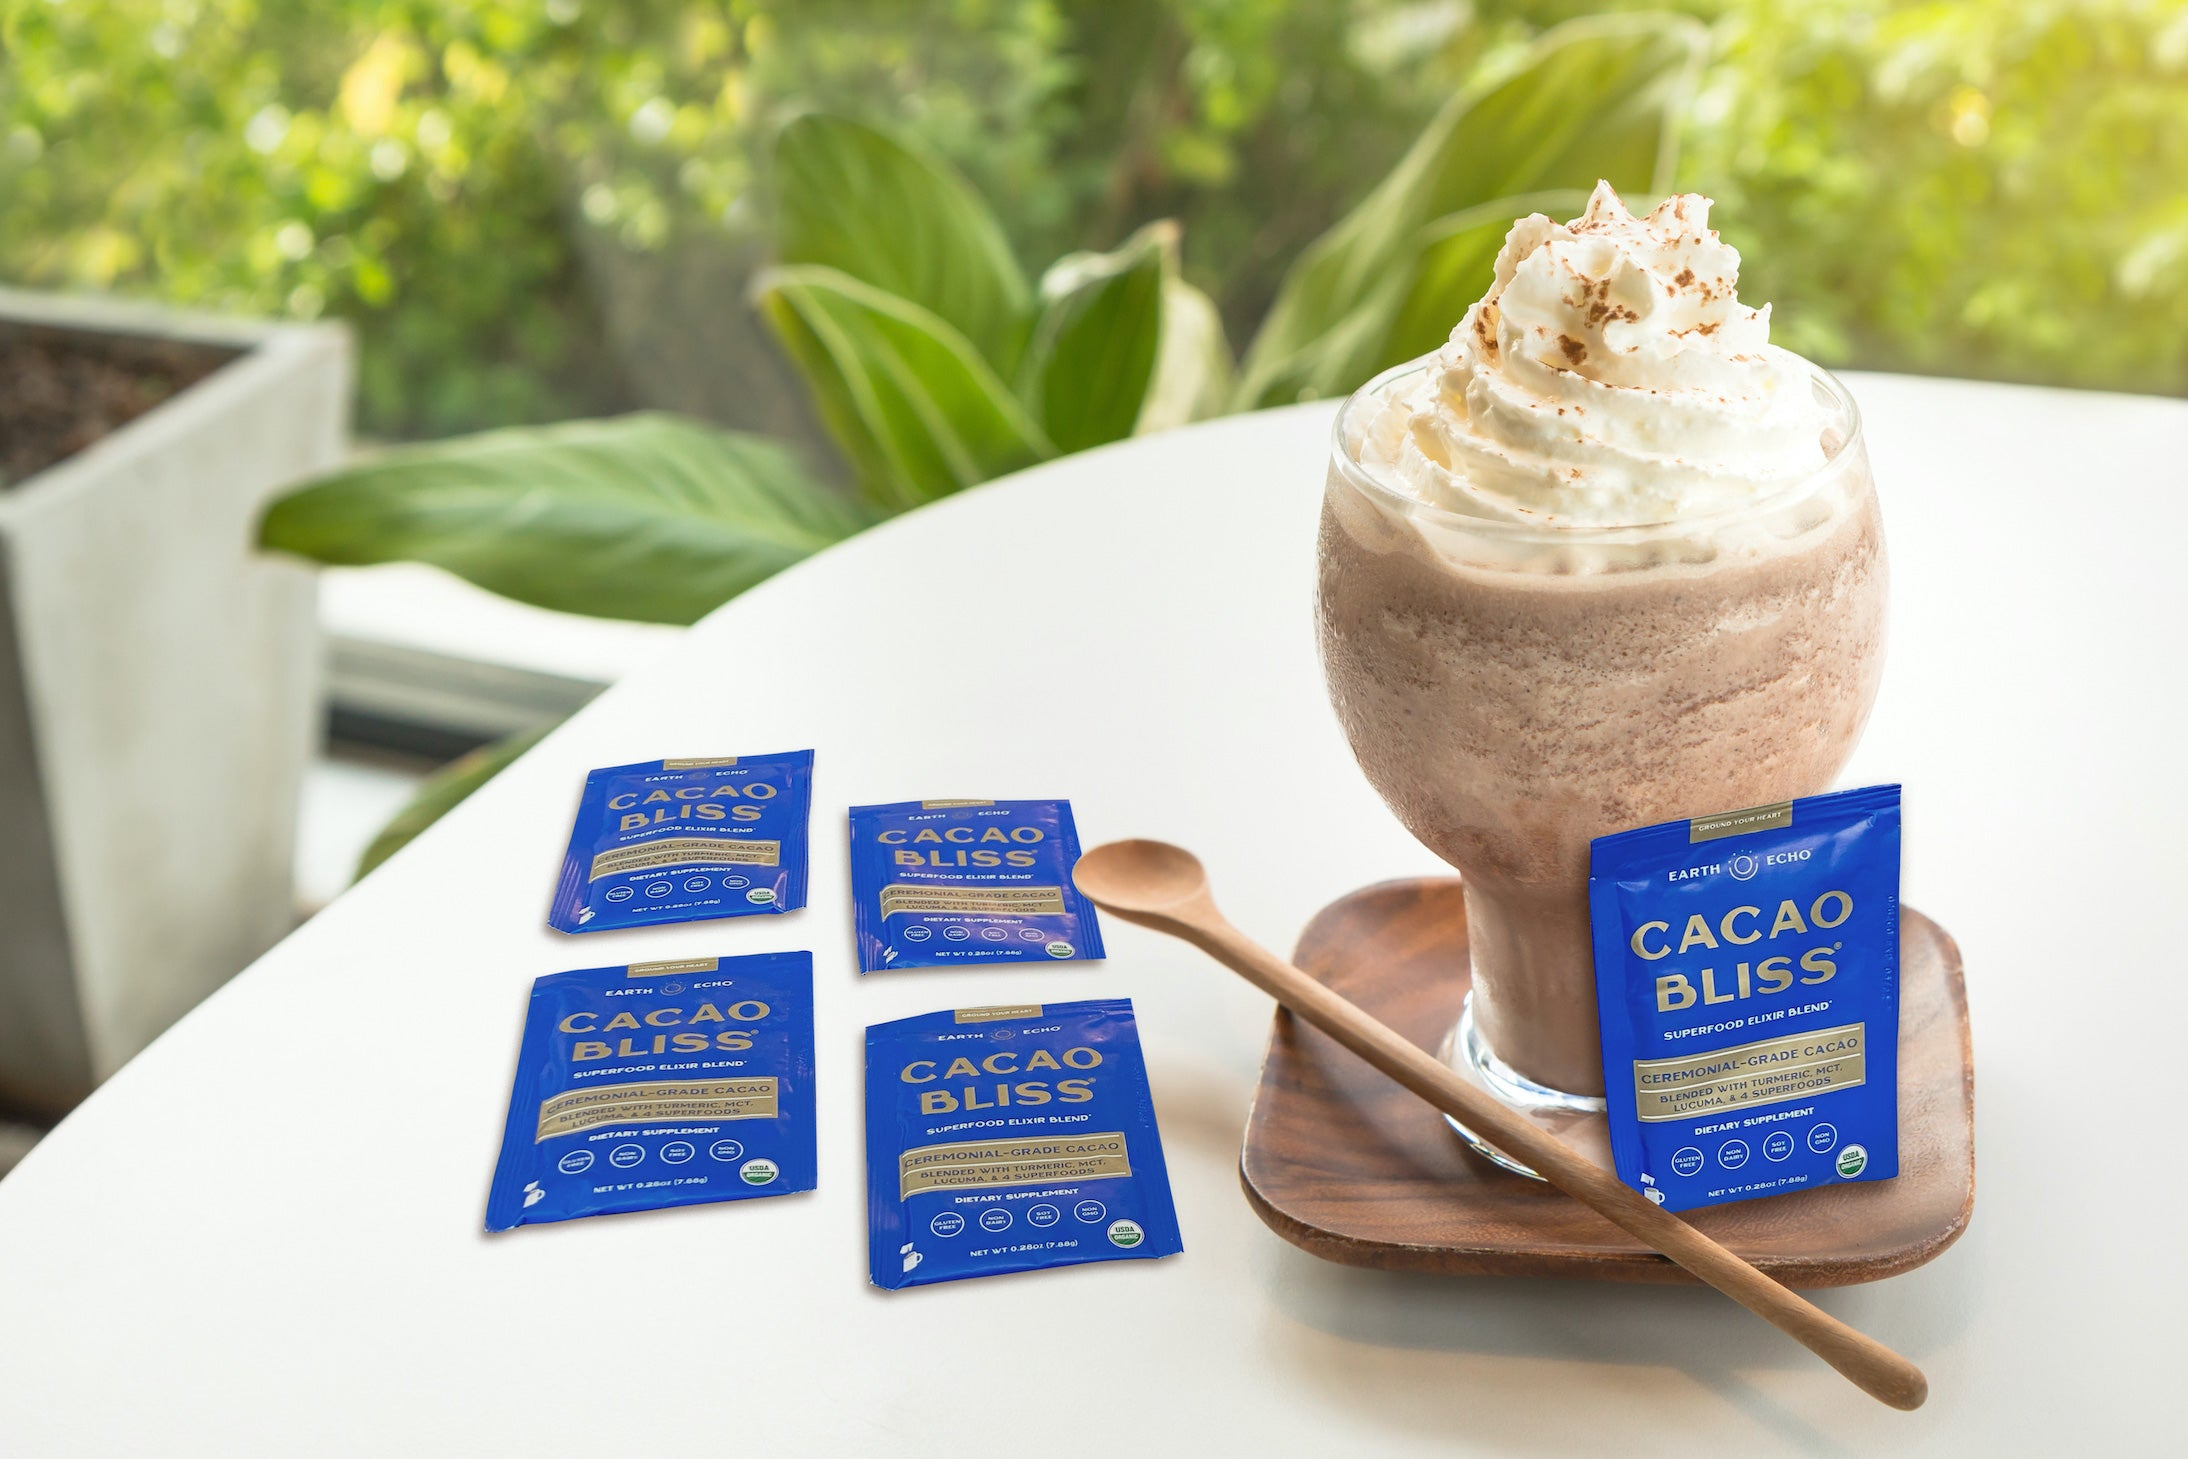 Cacao Bliss Travel Packs Yummy Dessert Image